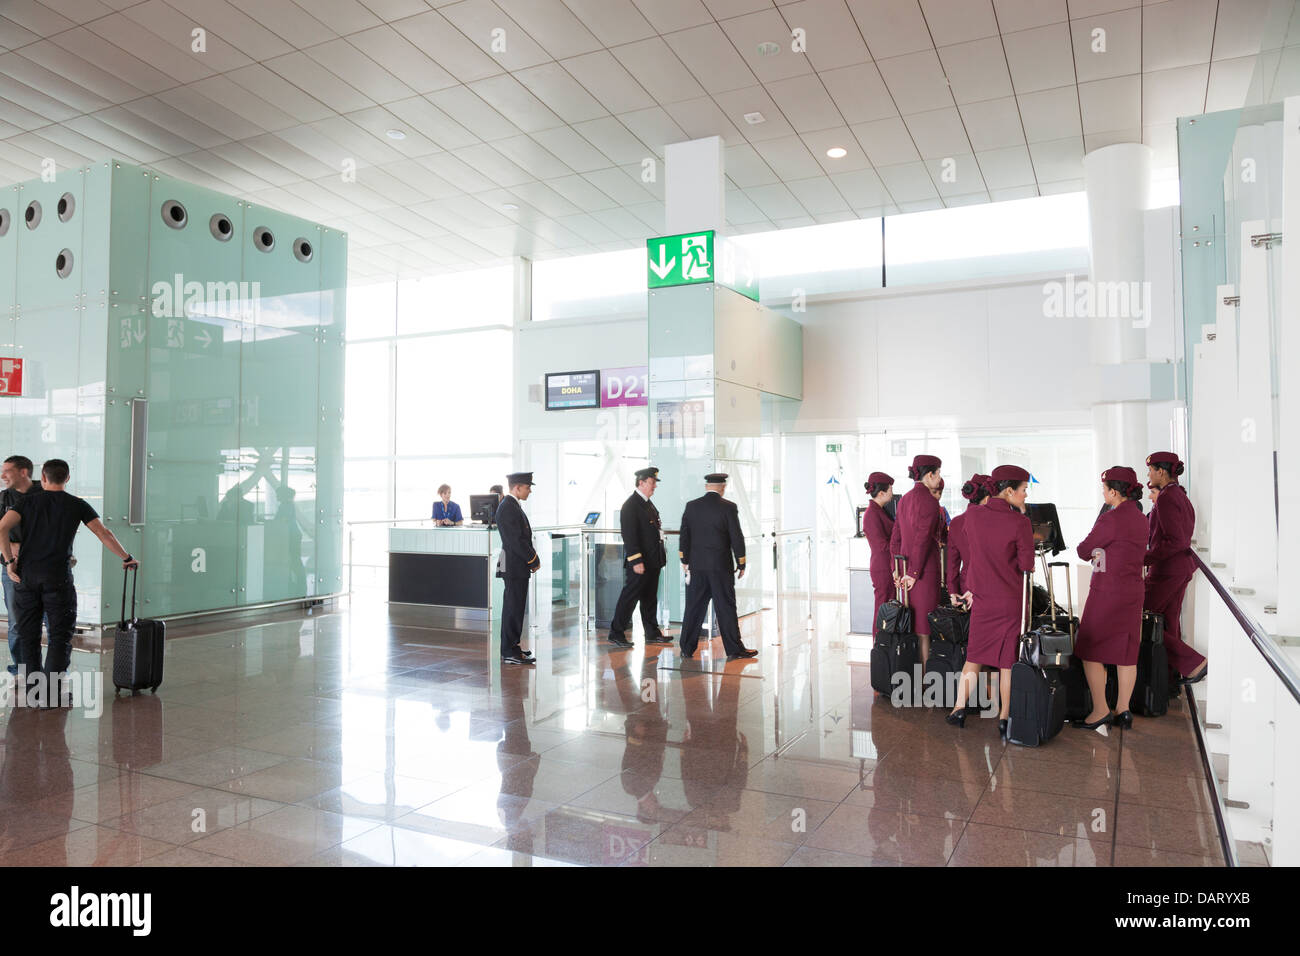 Qatar airways pilots and cabin staff waiting at departure gate - Stock Image